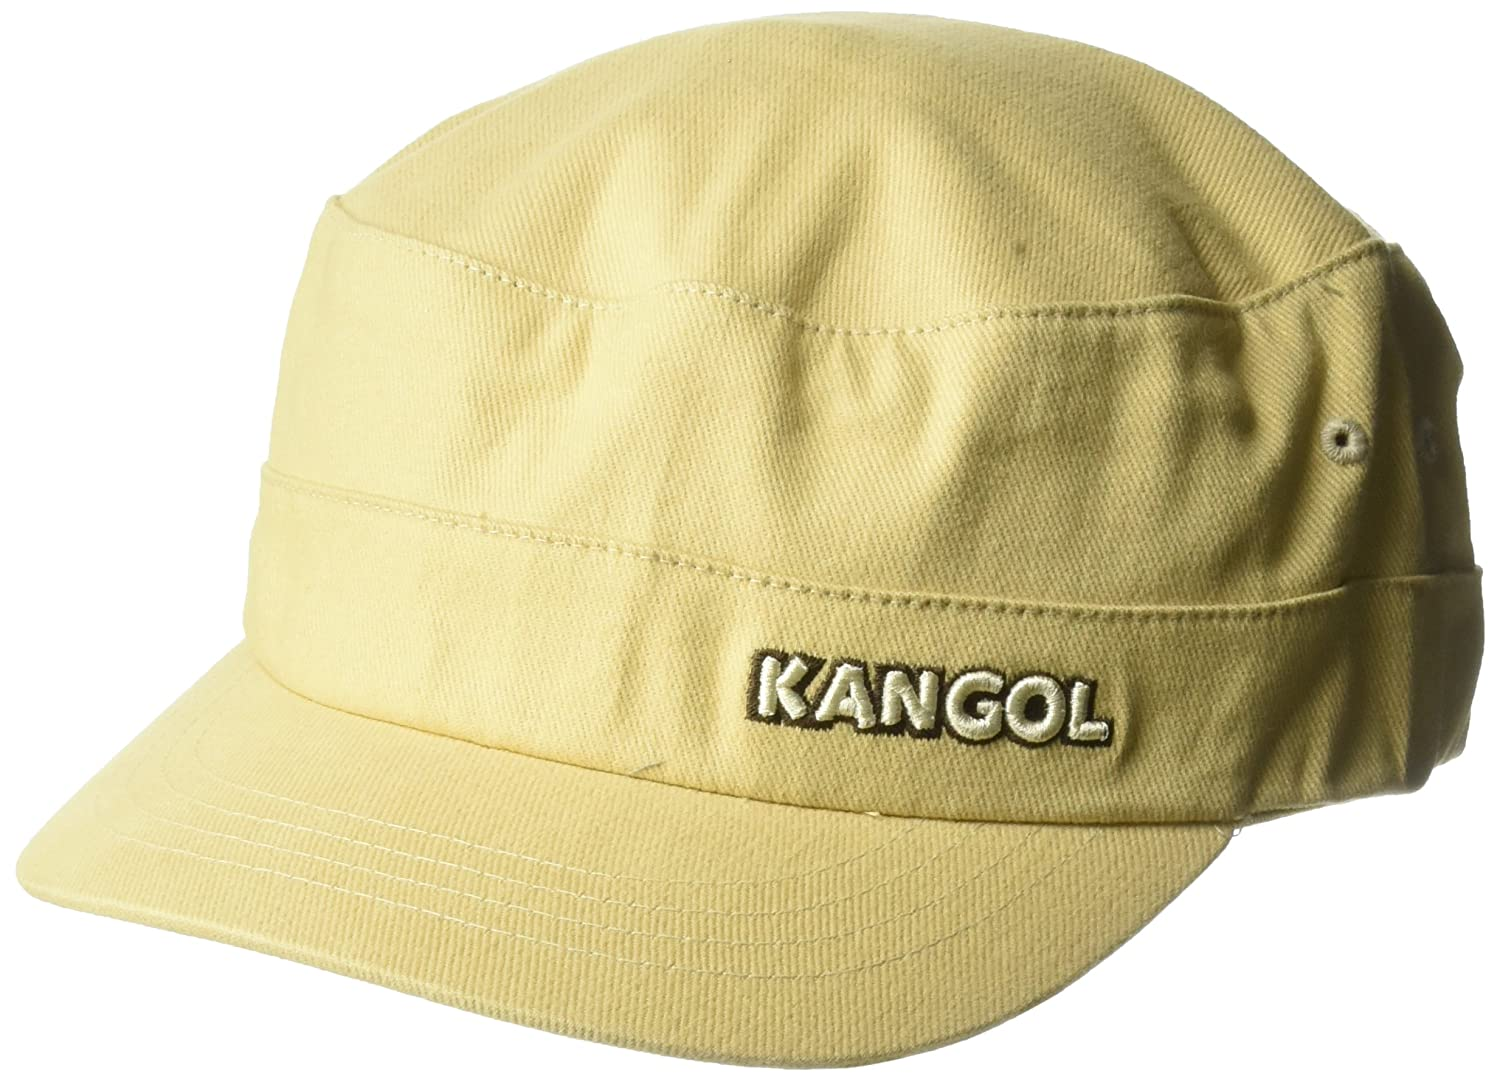 a14bc499996 Kangol Unisex-Adult s Cotton Twill Army Cap